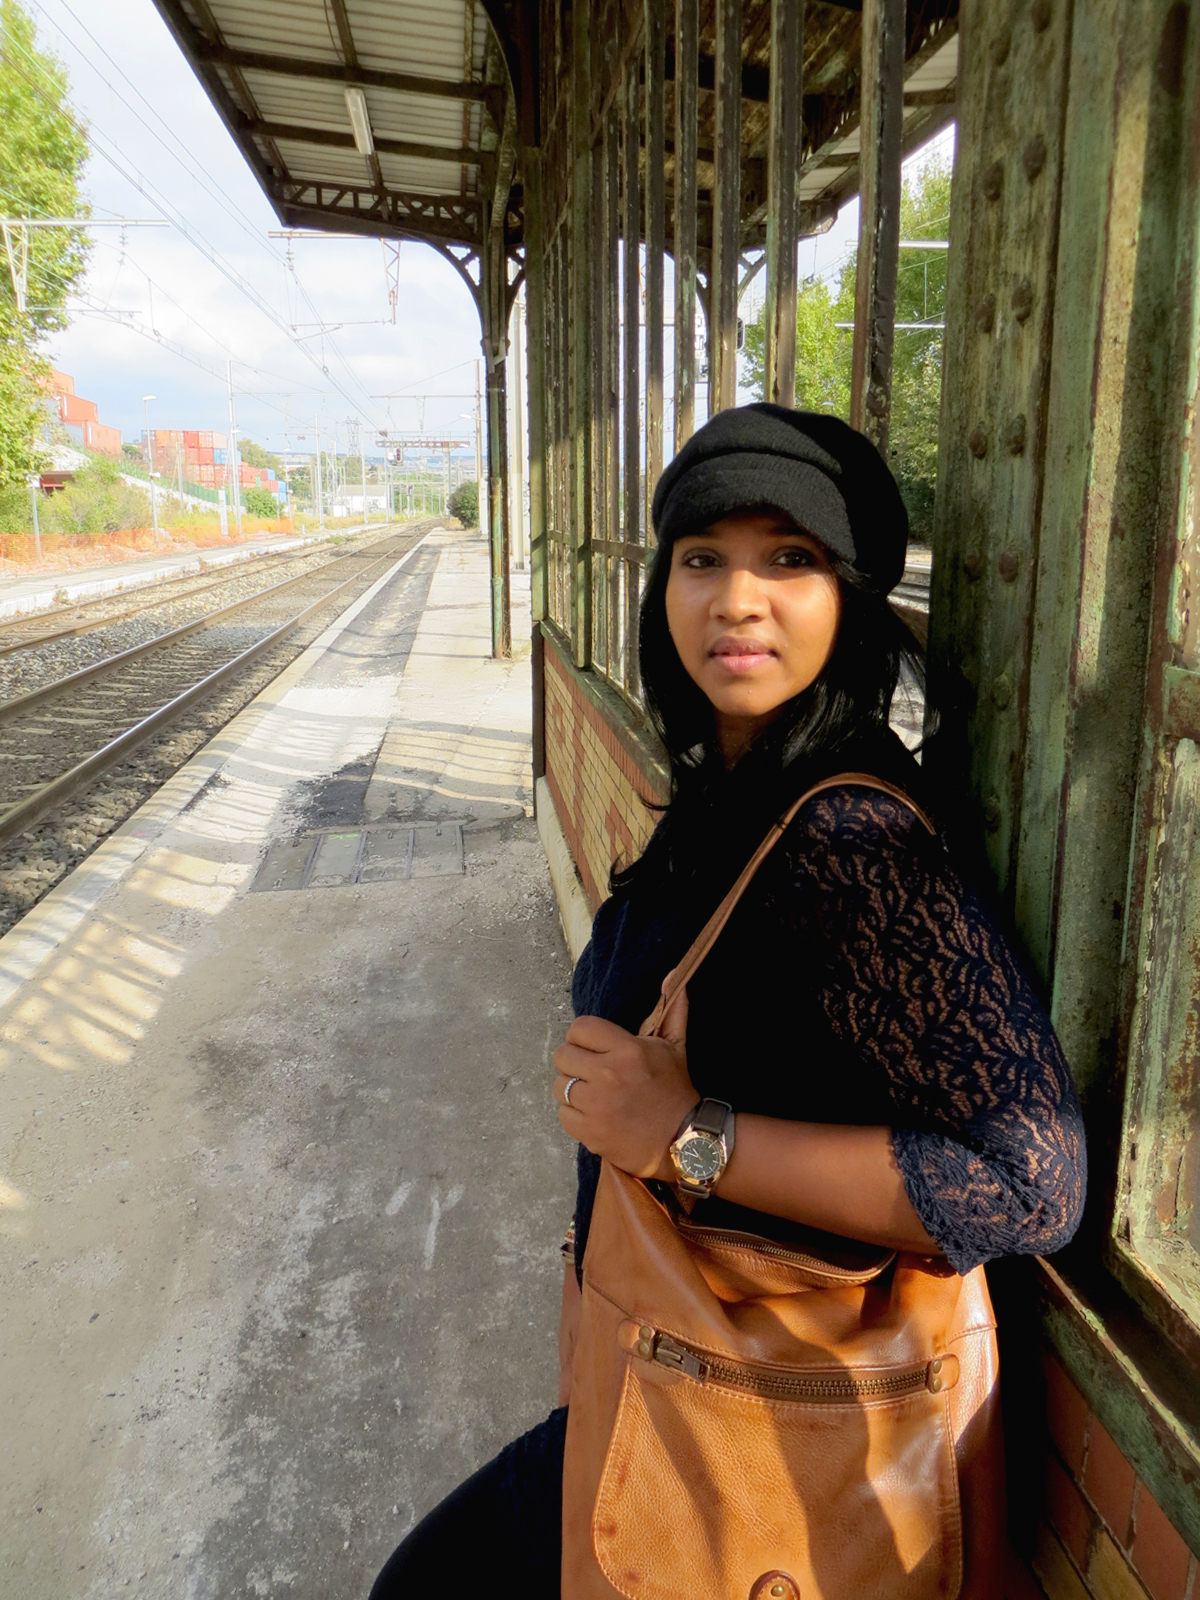 Hema_Waiting_for_the_train_C-Oui-Copenhague13